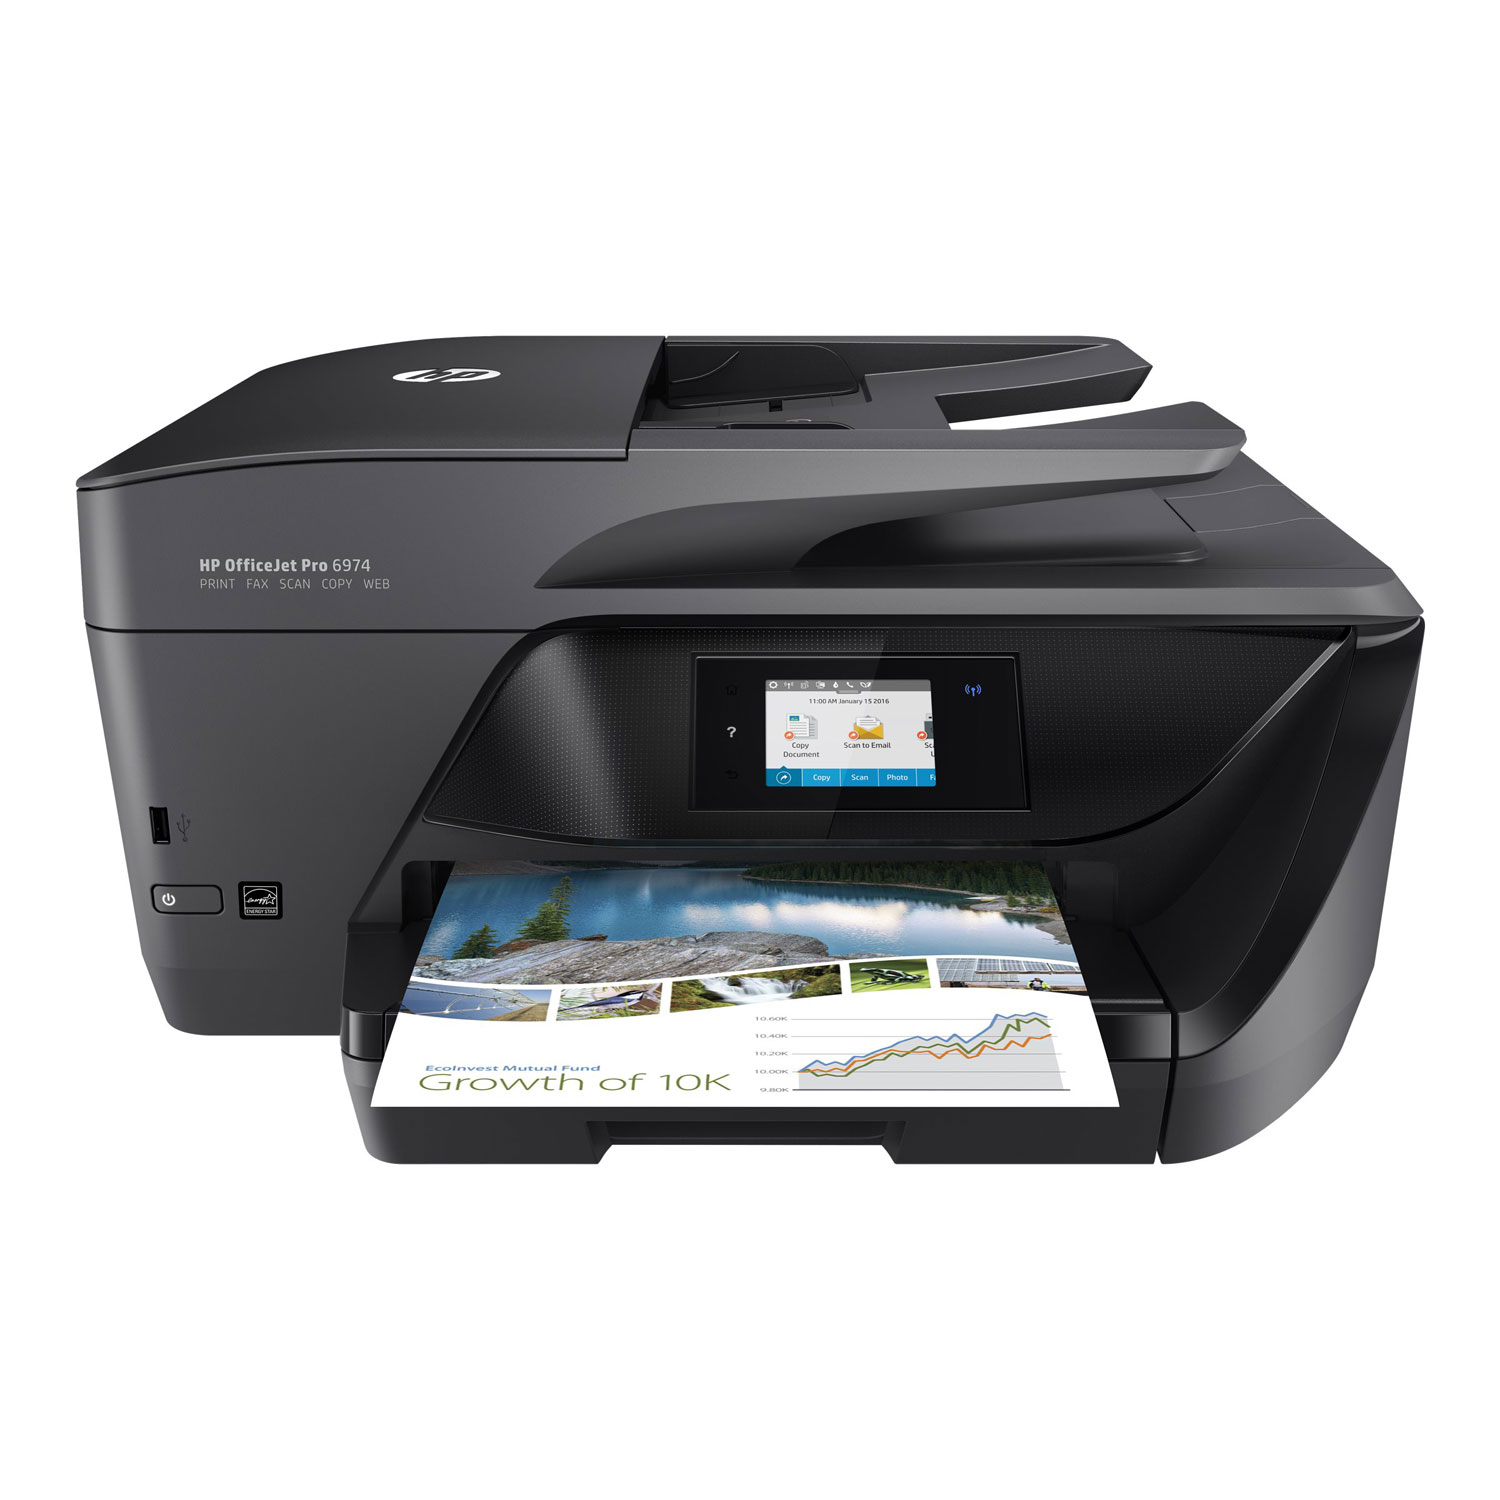 hp officejet pro 6974 imprimante multifonction hp sur. Black Bedroom Furniture Sets. Home Design Ideas